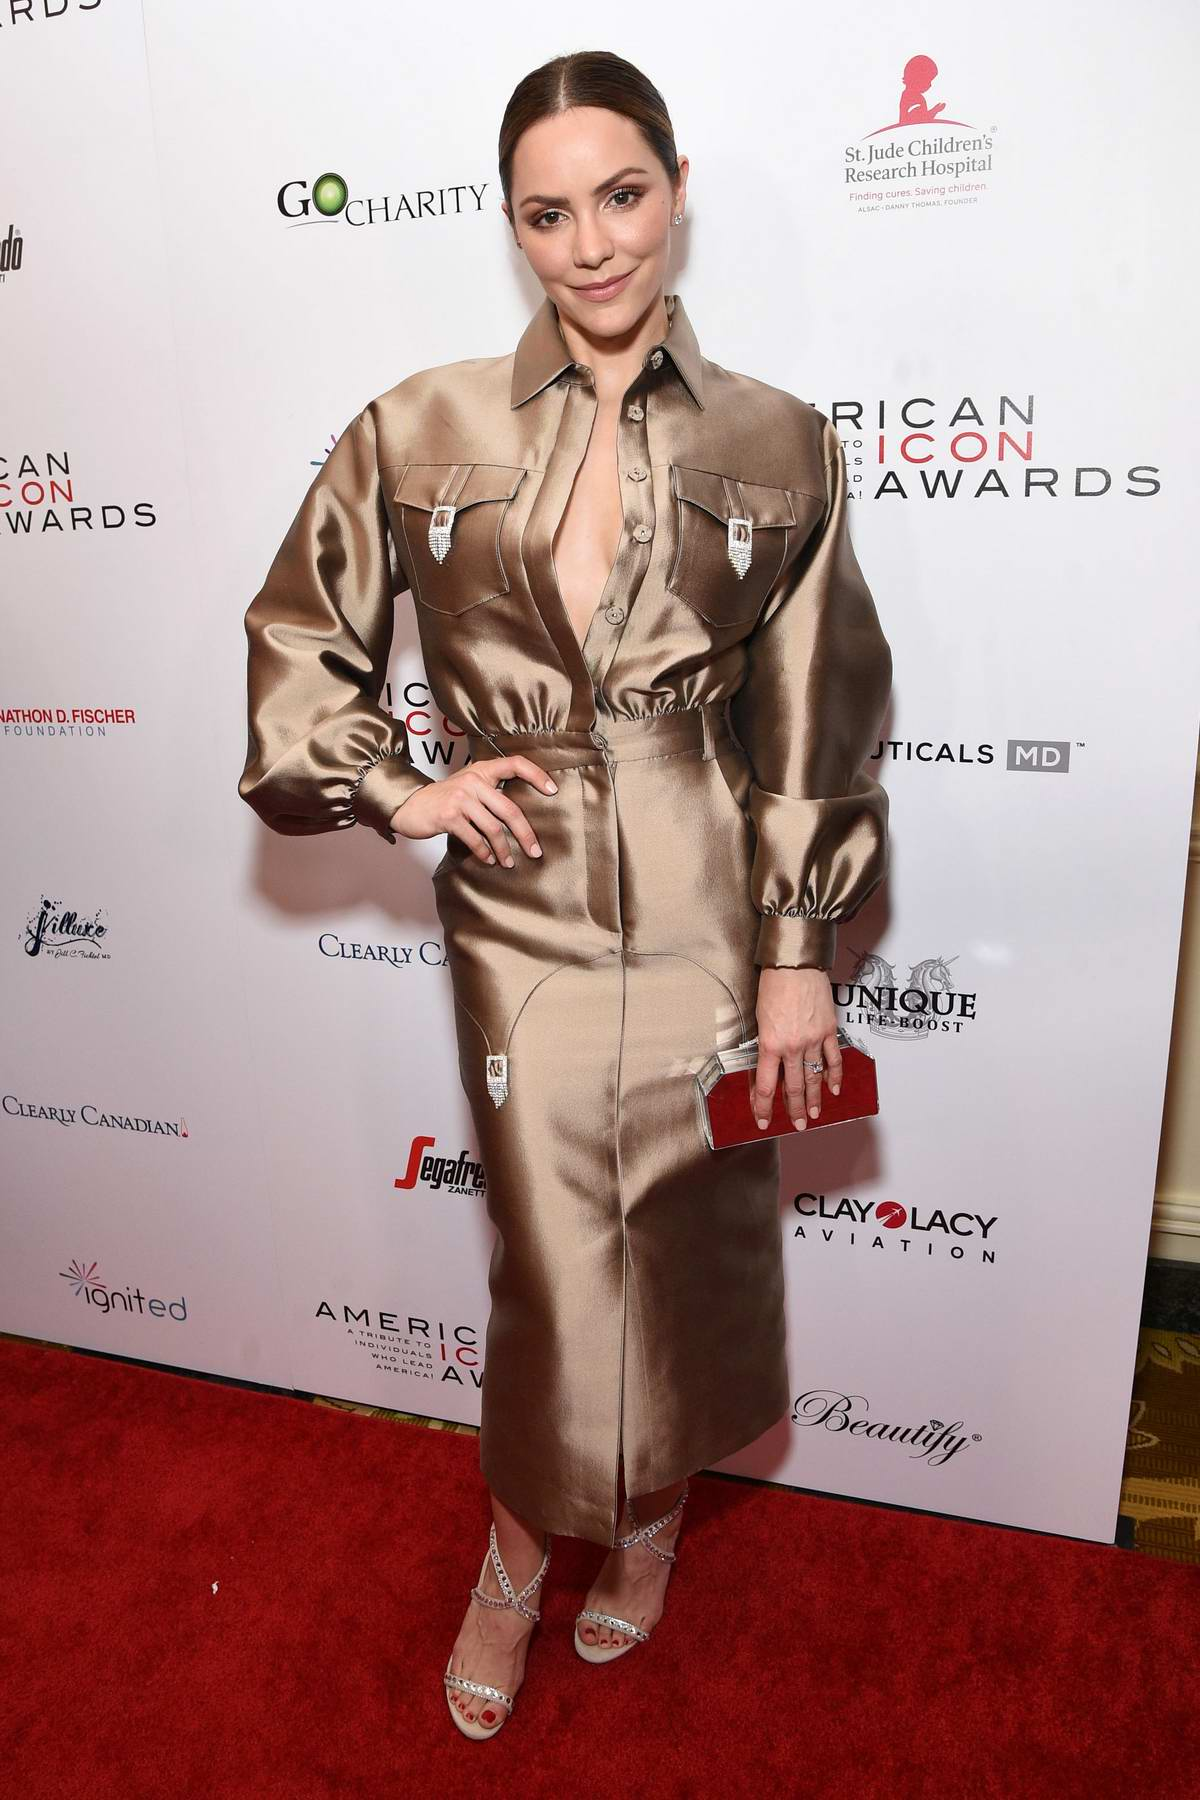 Katharine McPhee attends the American Icon Awards at Beverly Wilshire Four Seasons Hotel in Beverly Hills, Los Angeles